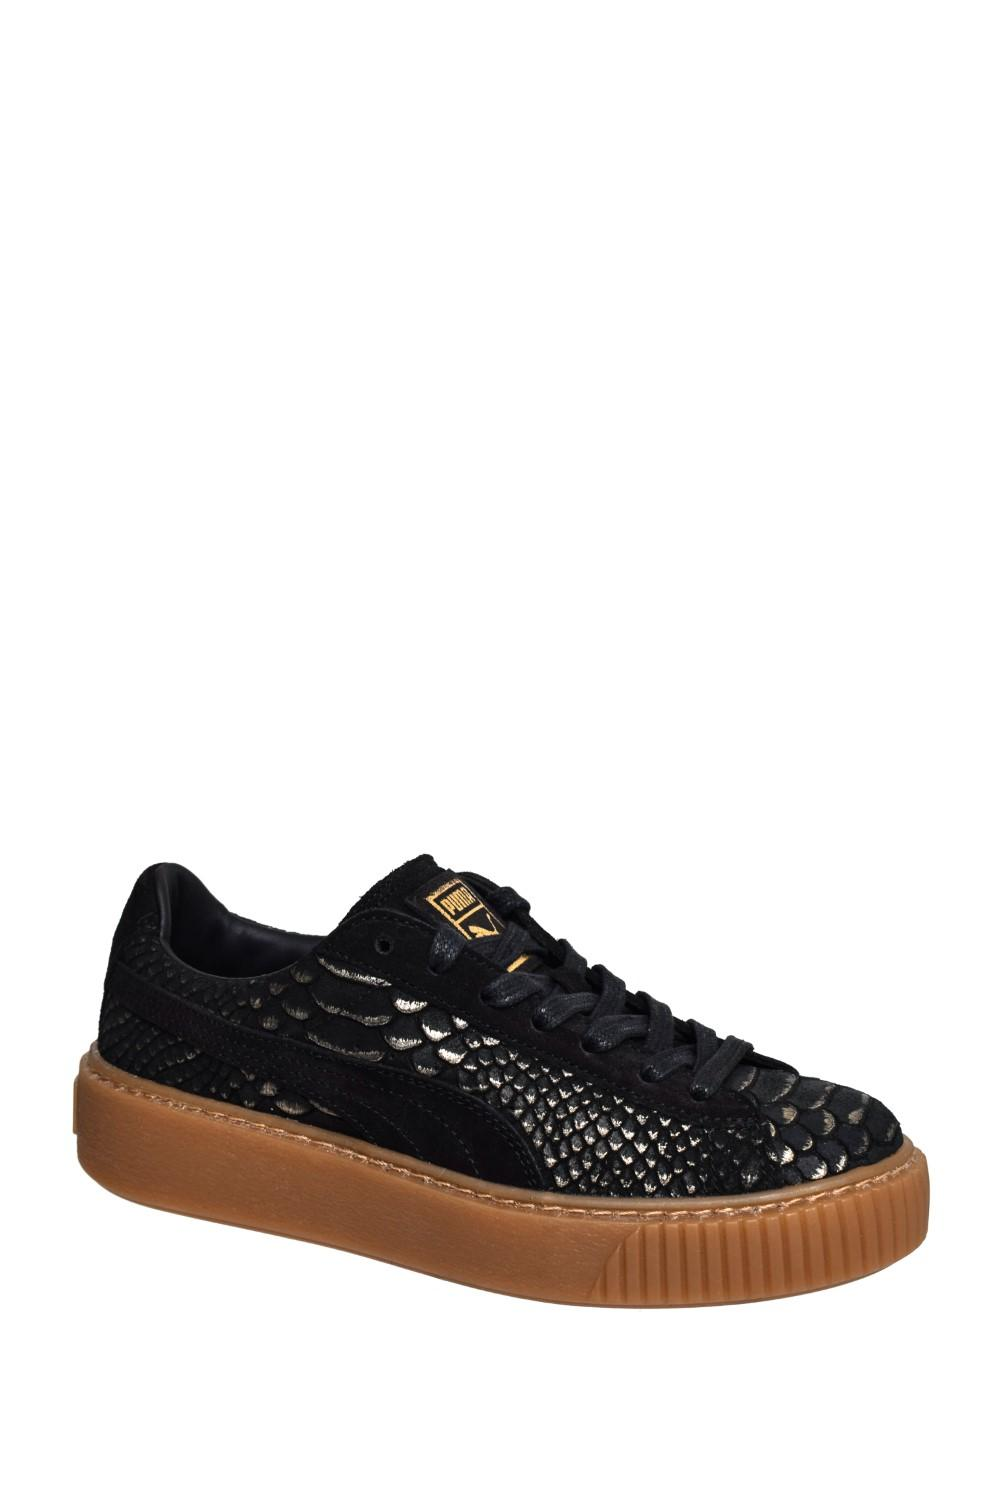 PUMA Skin Black Low Exotic Sneaker Platform Lyst Basket Top SpqMUVzG